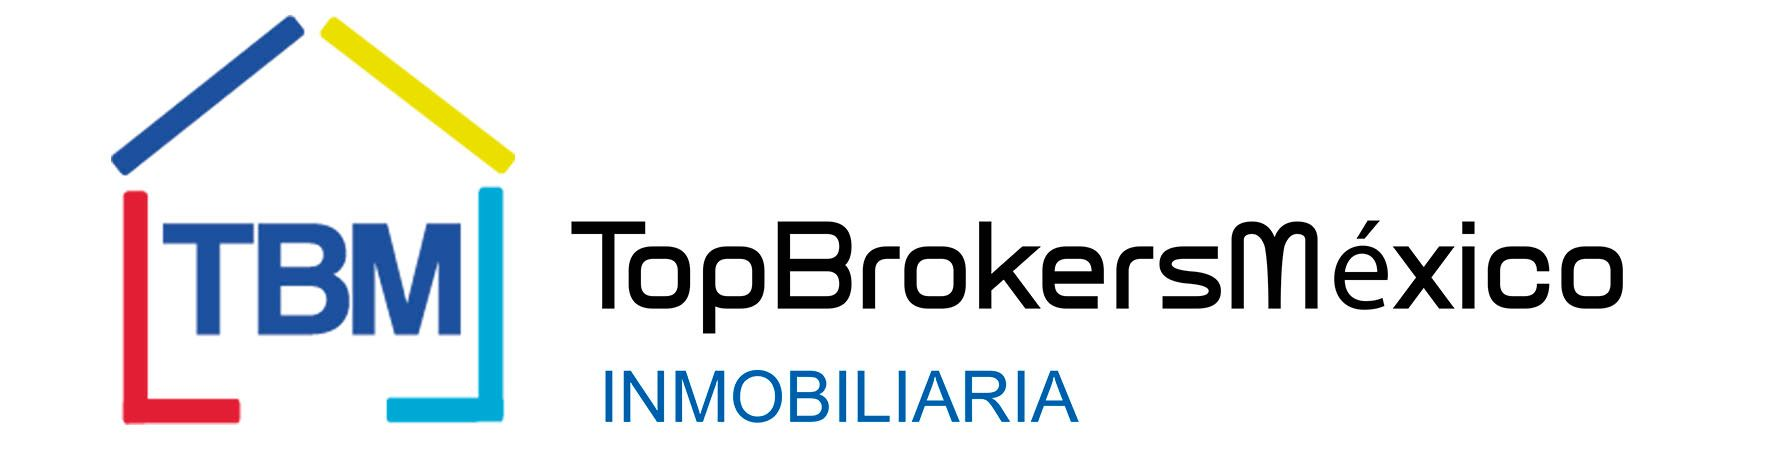 Logo de  Top Brokers Inmobiliaria      (crm-5832-66)